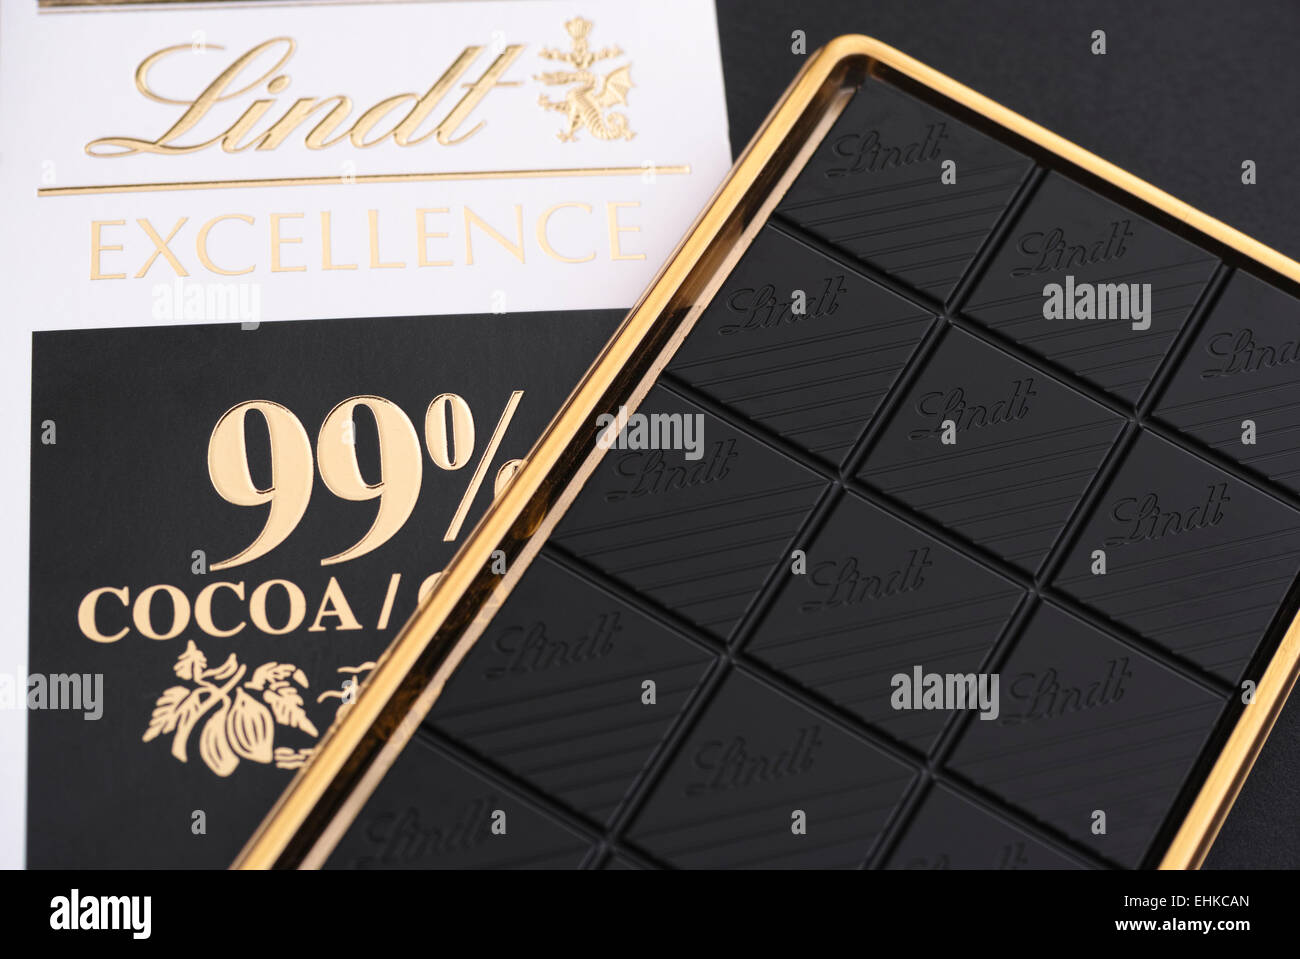 Tambov, Russian Federation - February 26, 2015 Lindt Excellence Cocoa 99% chocolate bar. Studio shot. - Stock Image